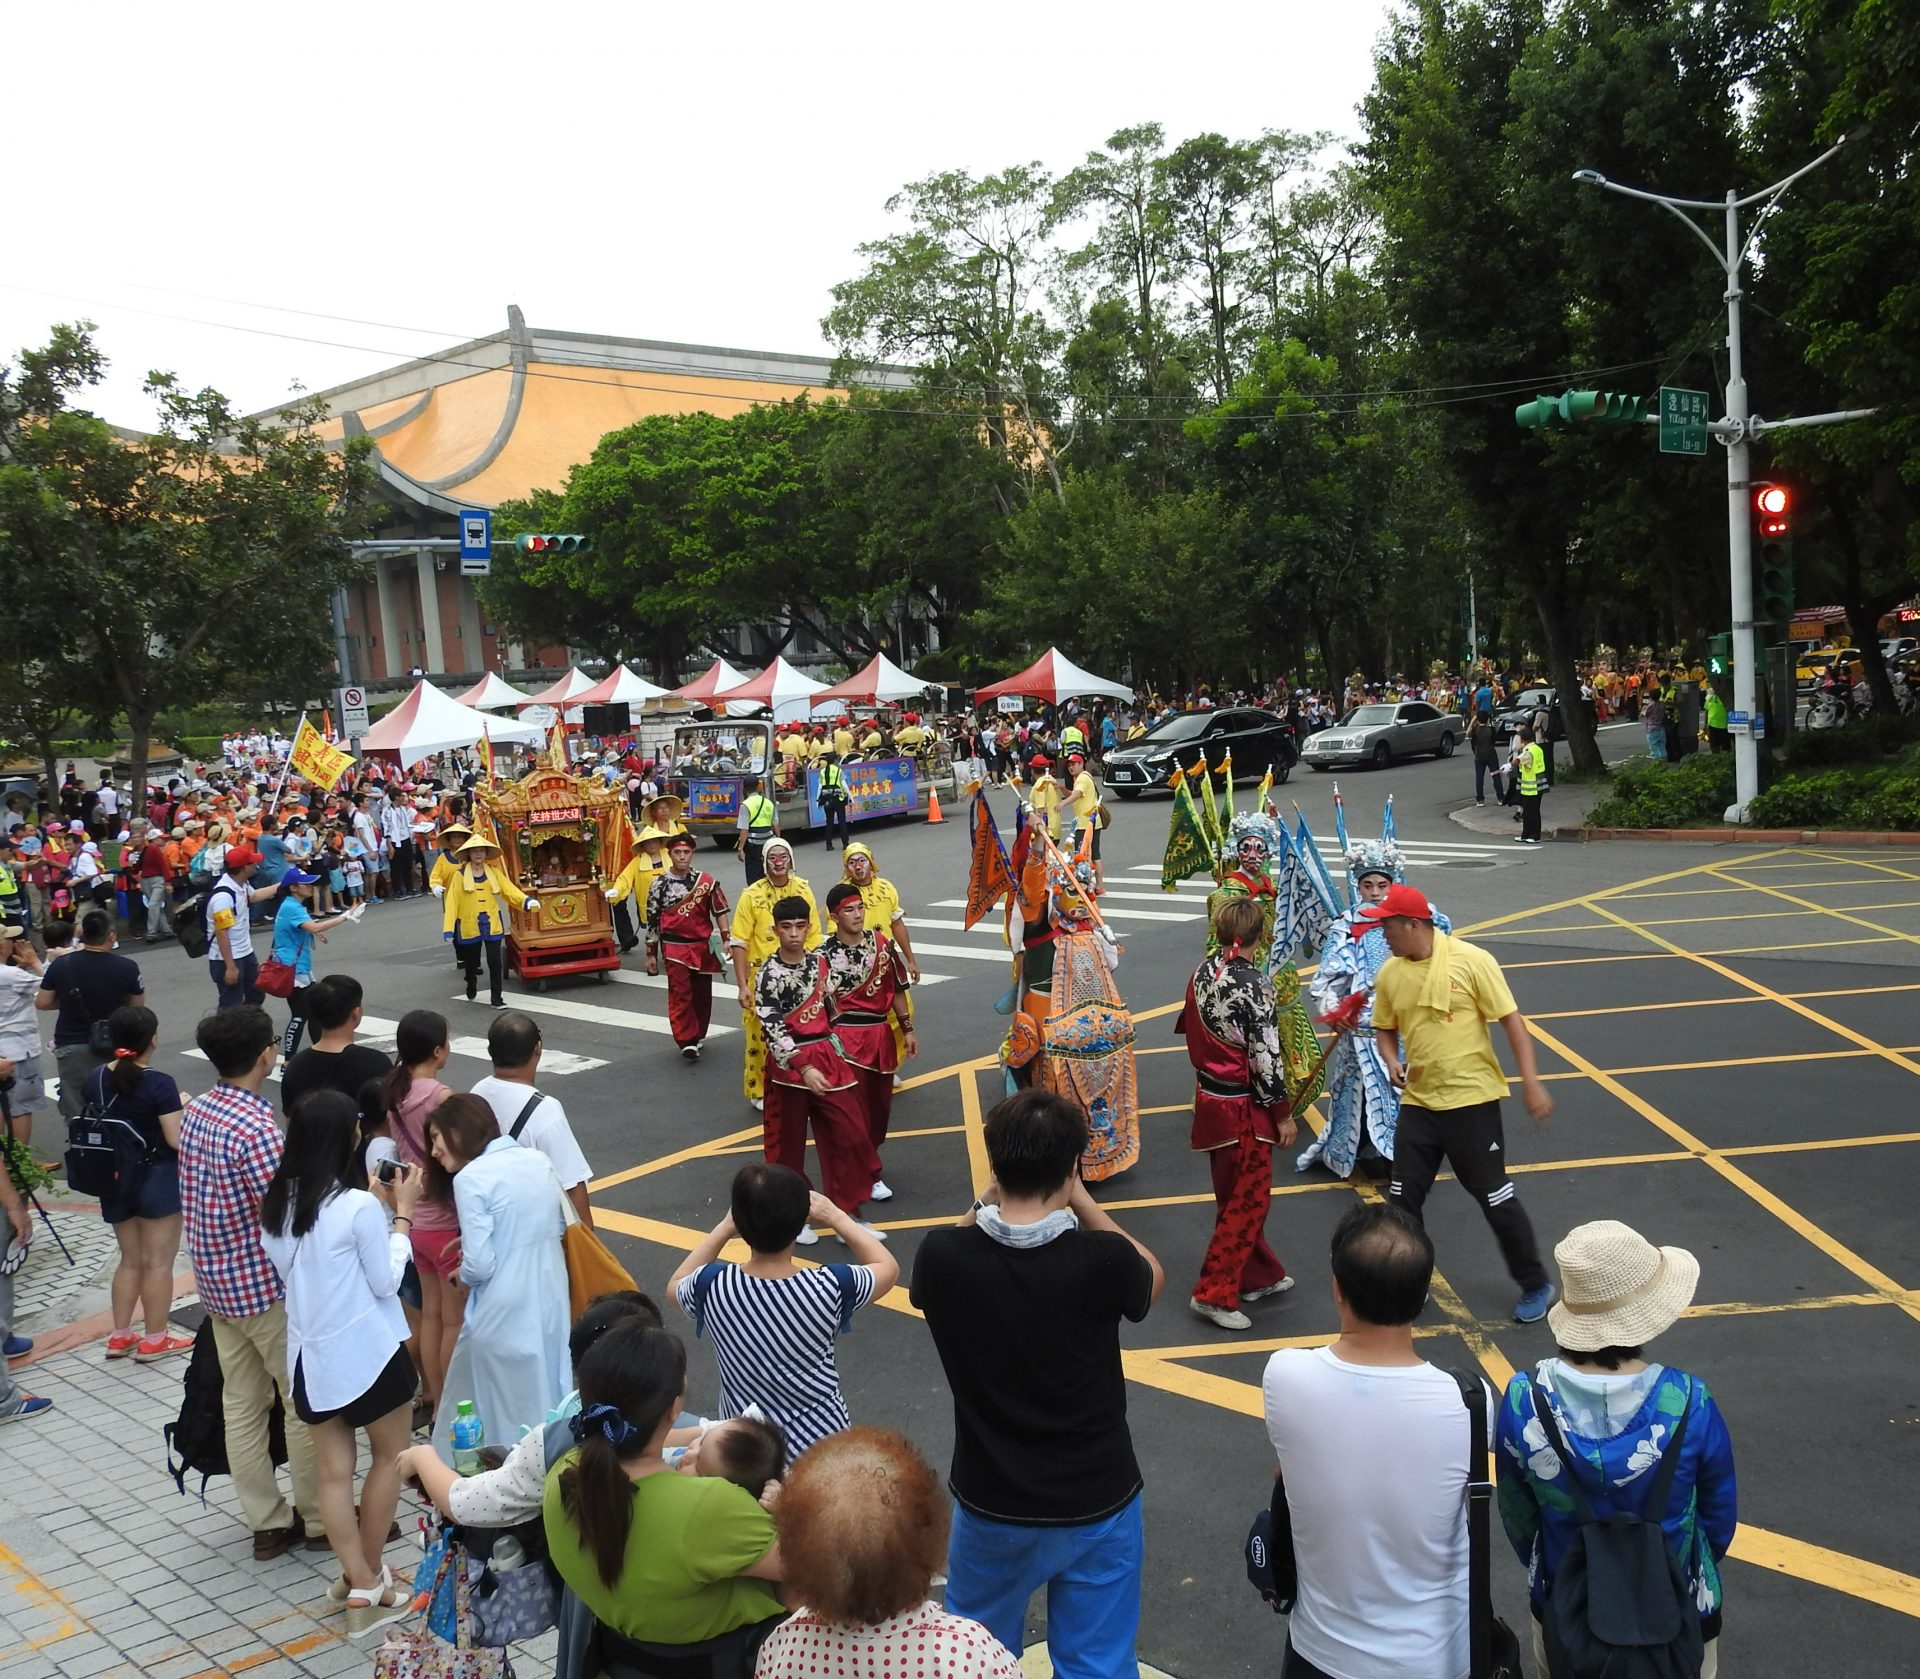 The grand parade is full of religious carnival atmosphere. (Image: Billy Shyu/Vision Times)